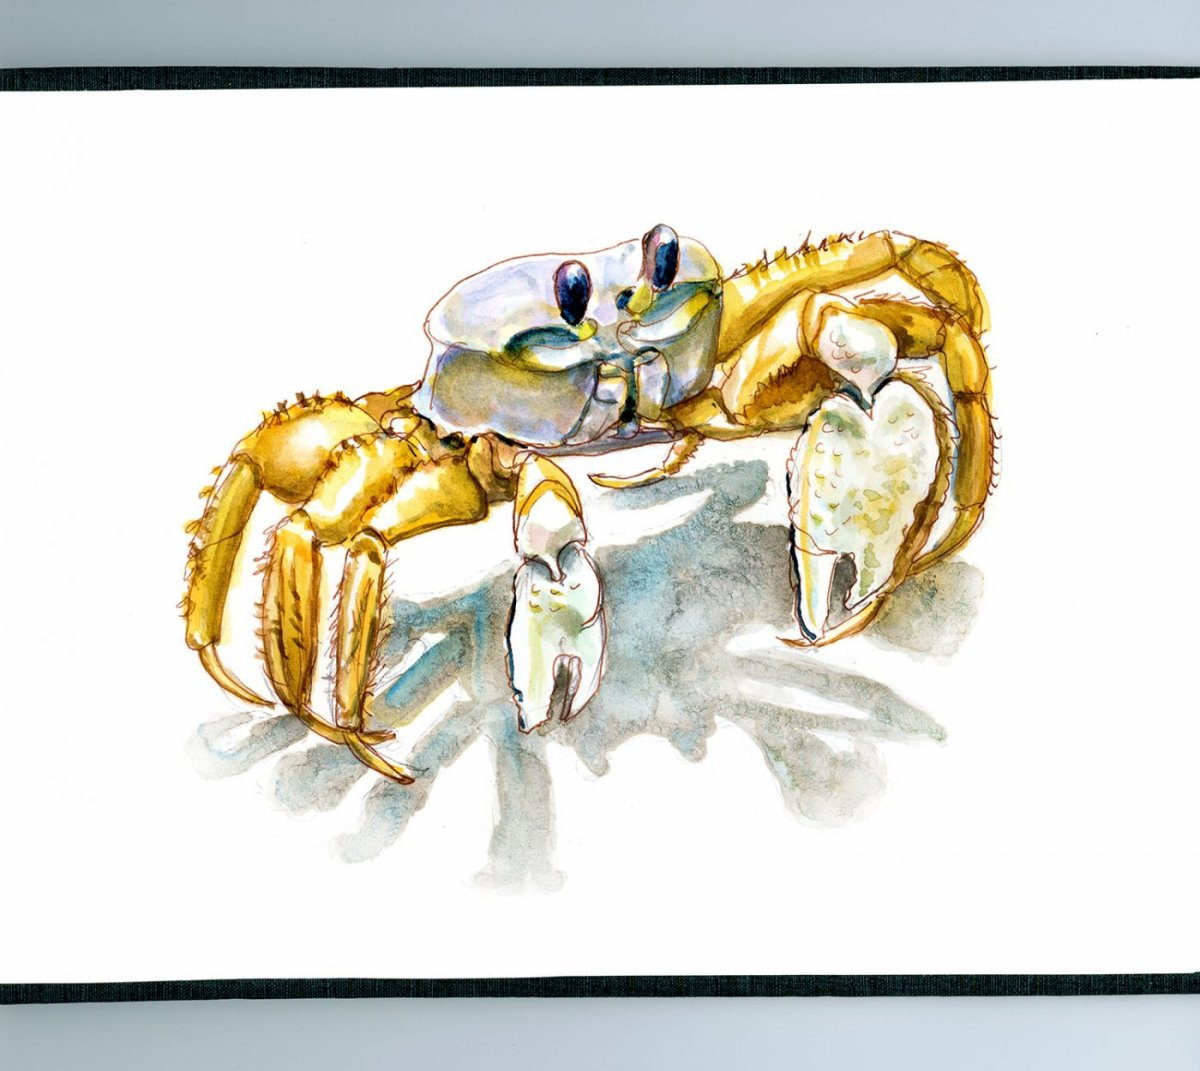 Day 15 - World Watercolor Month On The Beach Ghost Crab - Doodlewash